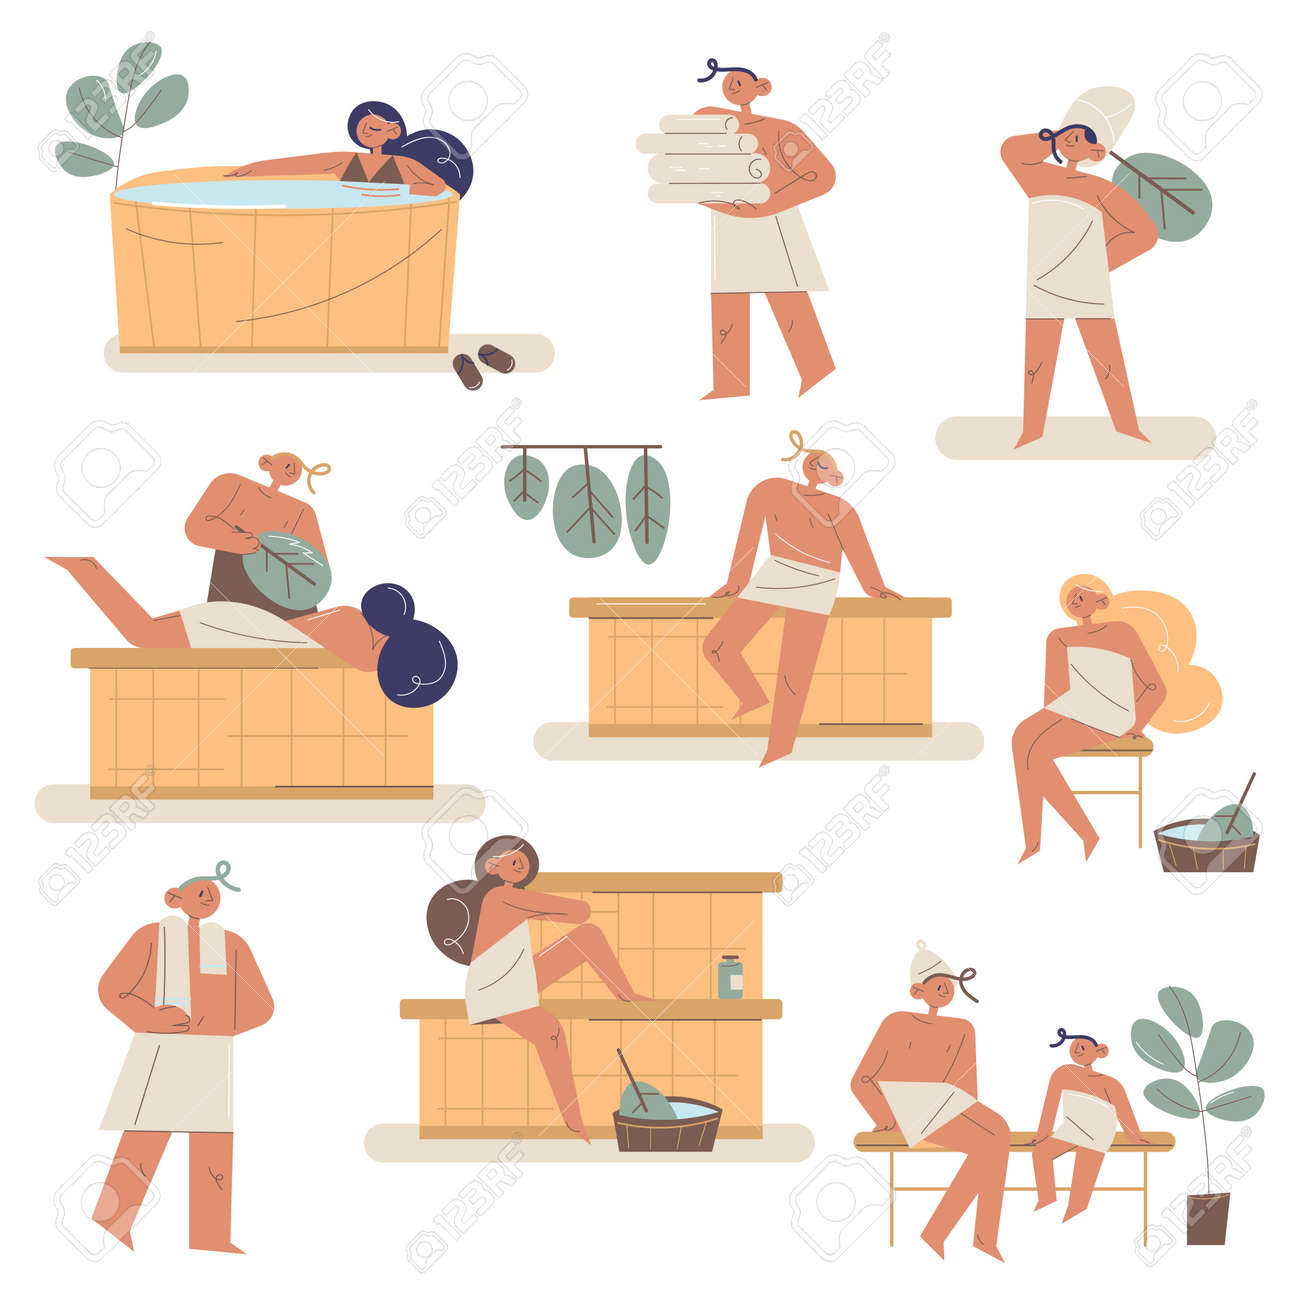 Set of people and families enjoying bath and sauna in towels with brooms - 164938480